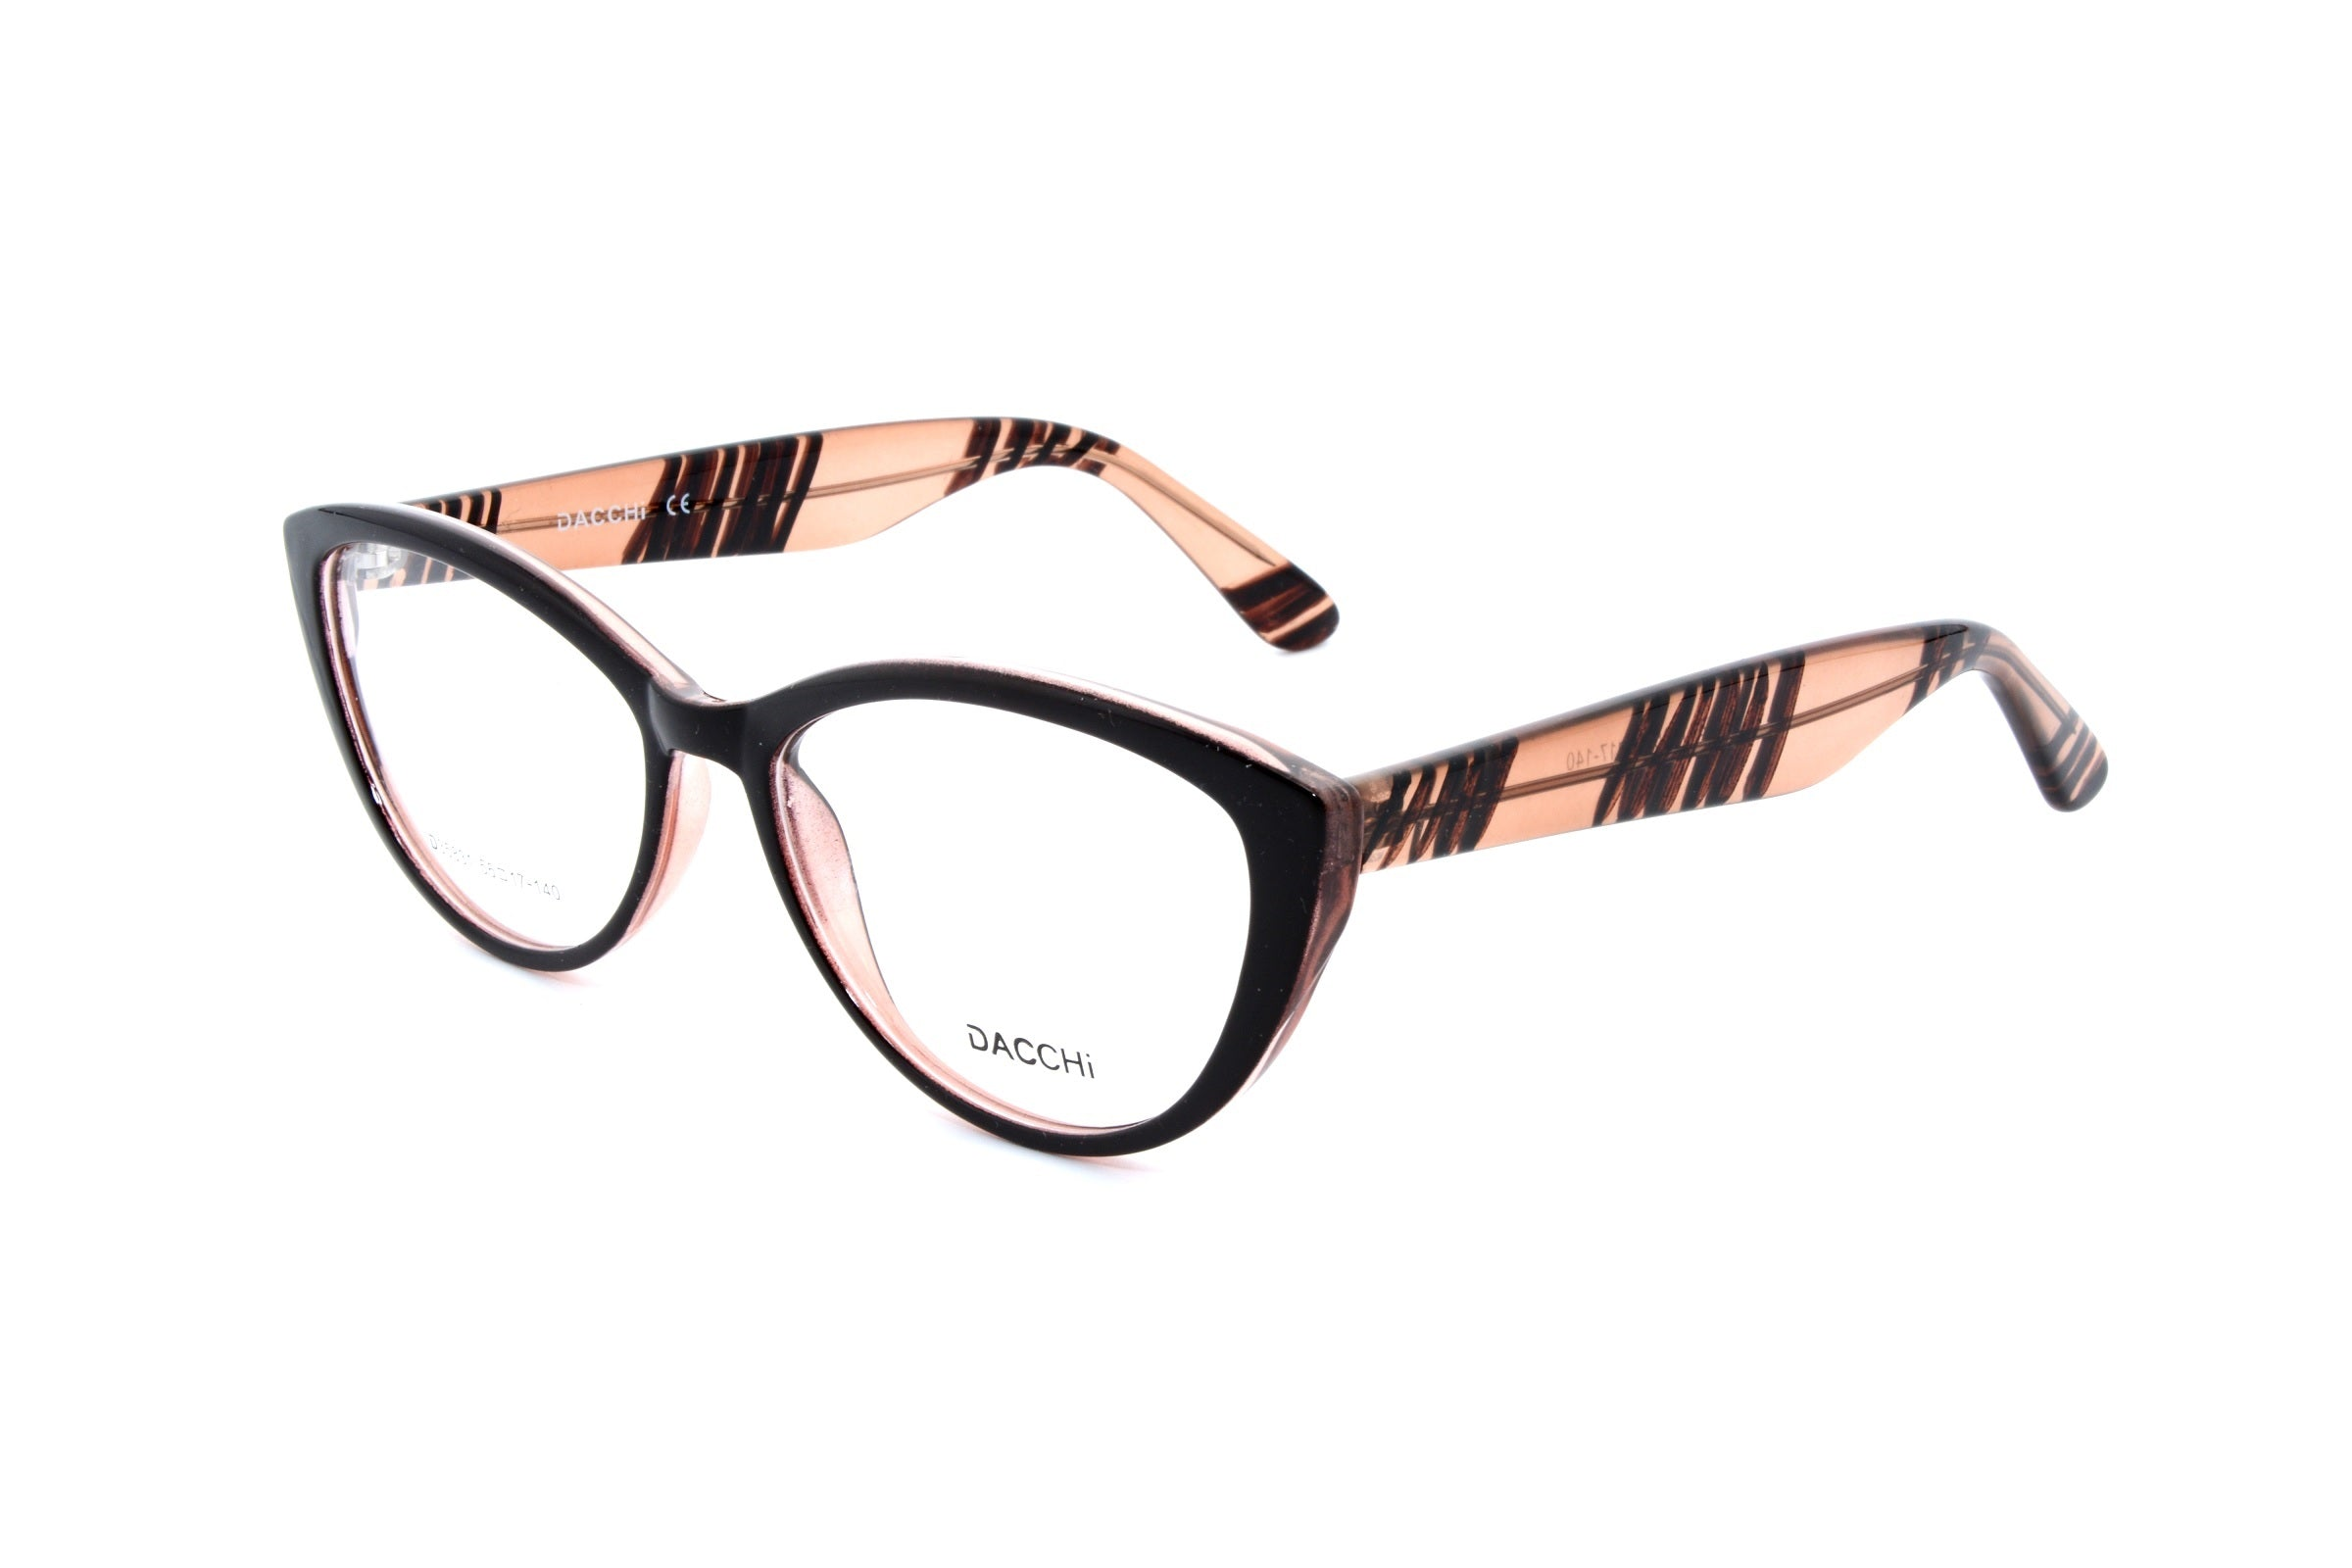 Dacchi eyewear 35831, C5 - Optics Trading